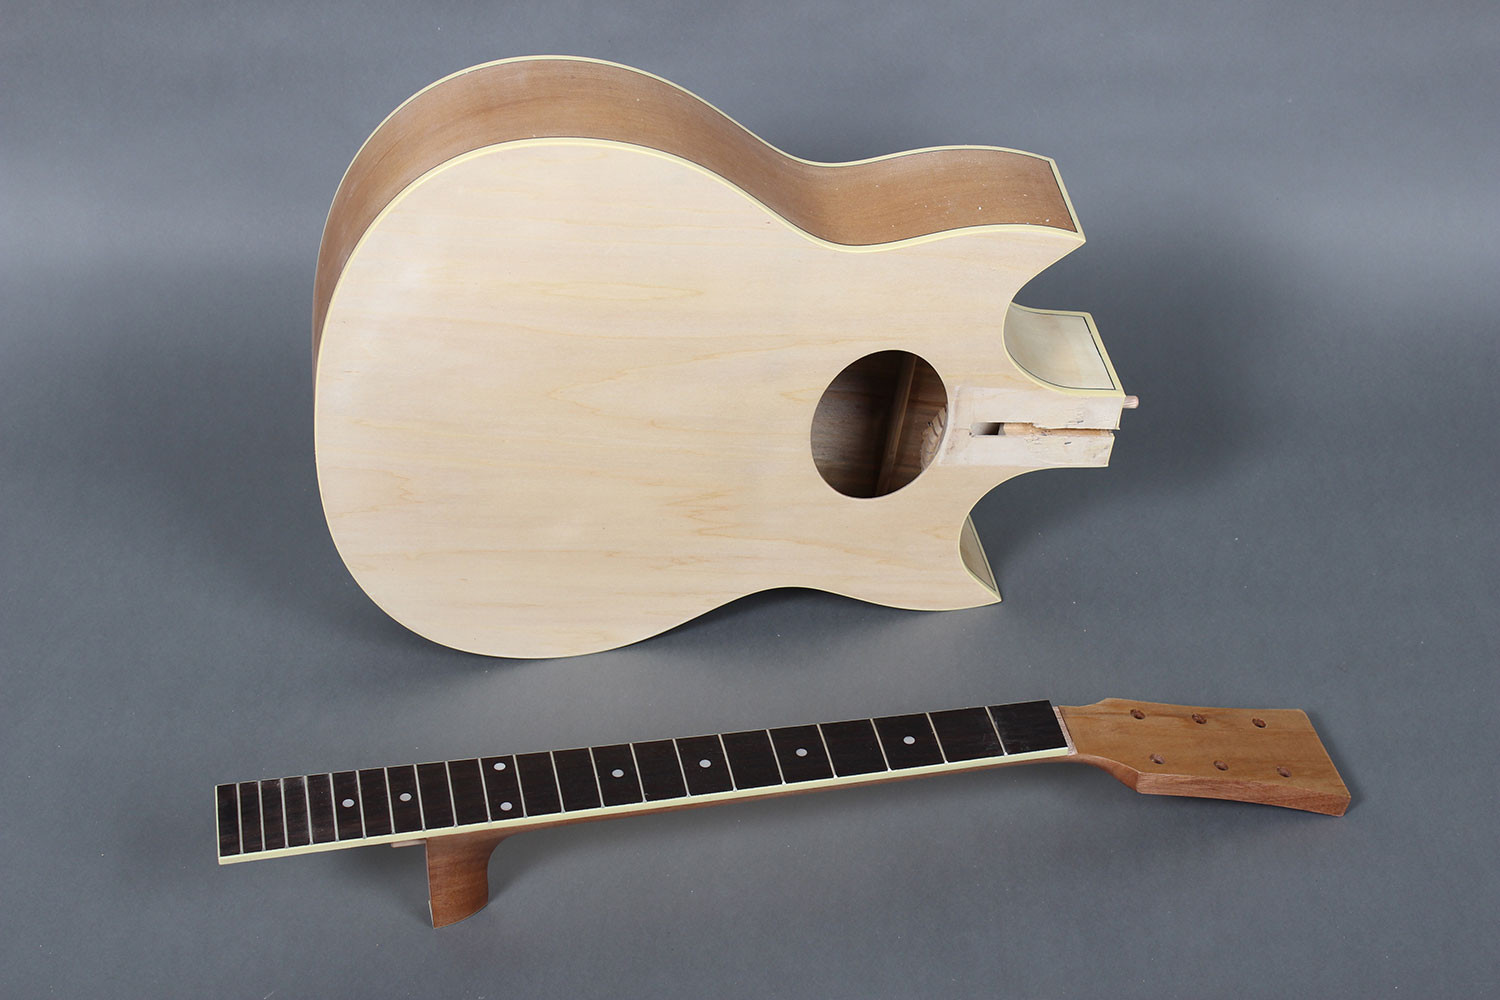 Best ideas about DIY Acoustic Guitar Kits . Save or Pin Jumbo Double Cutaway Acoustic Guitar kit DIY GK S3991DG Now.